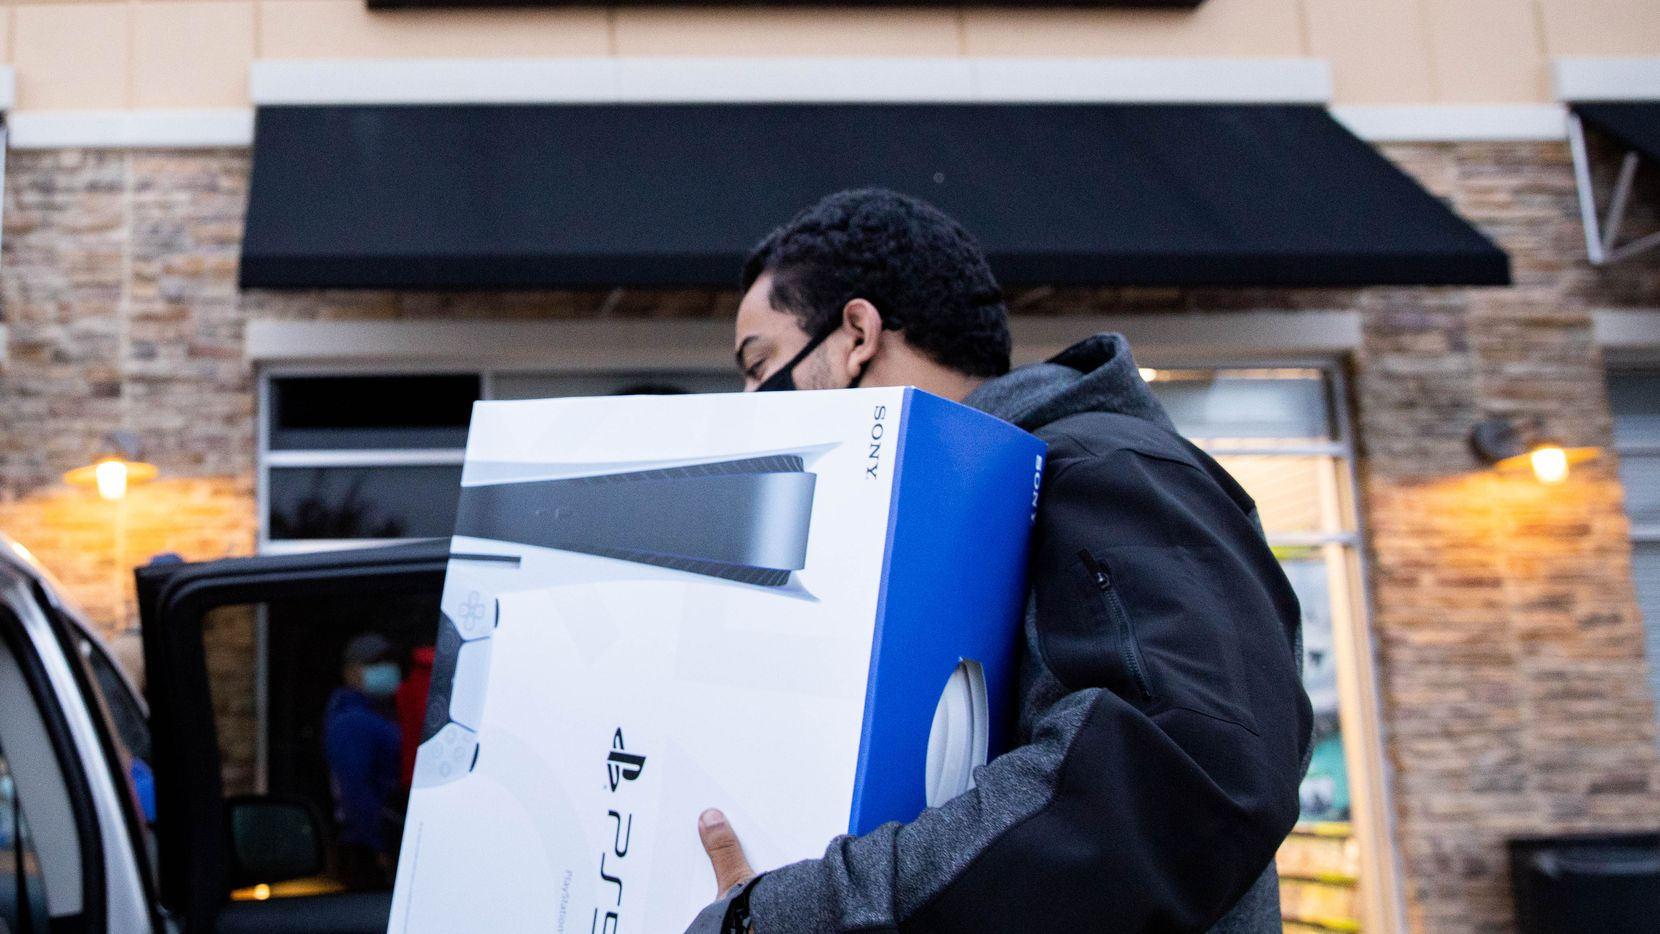 Brandon Lopez of Irving loads his new Playstation 5 in his car on Black Friday at the Timber Creek Crossing GameStop.